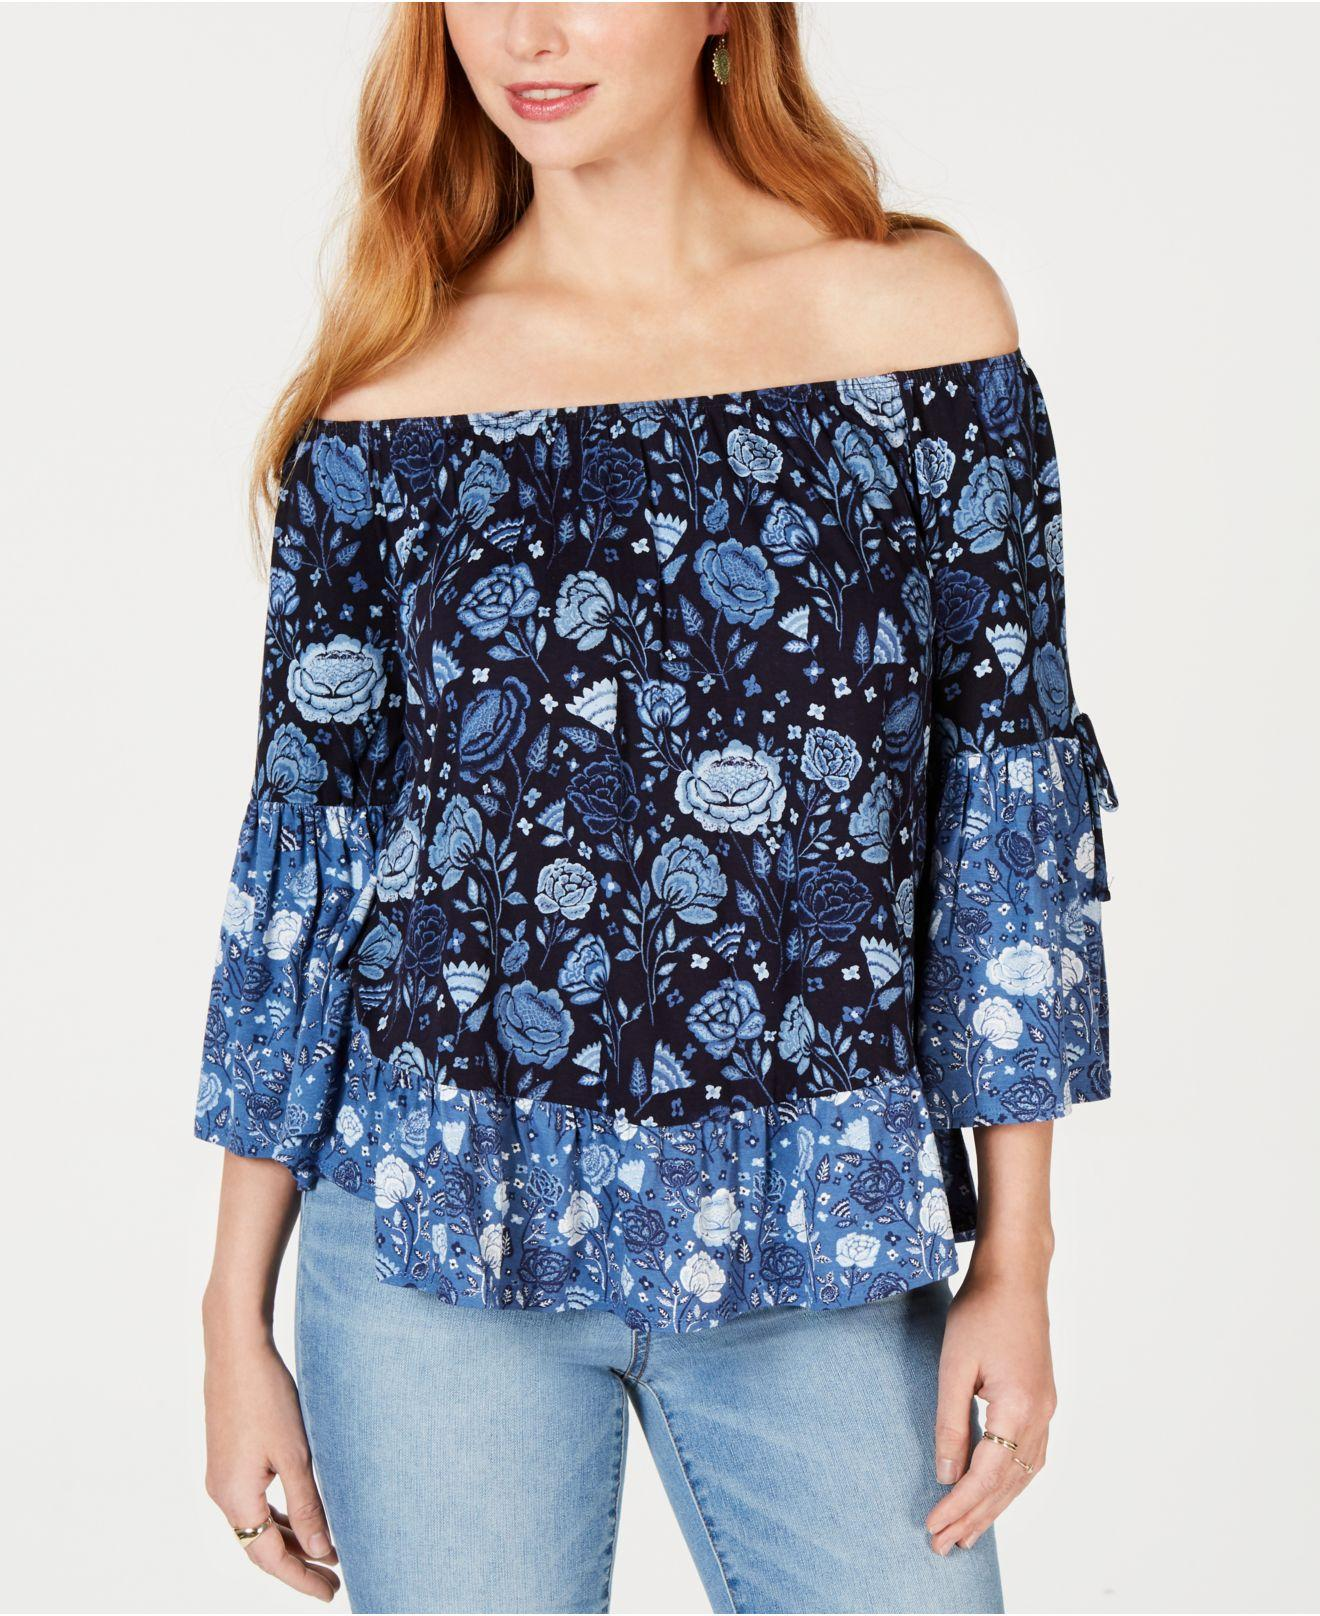 66c8cdd3cffb02 Style   Co. Women s Blue Printed Off-the-shoulder Top ...